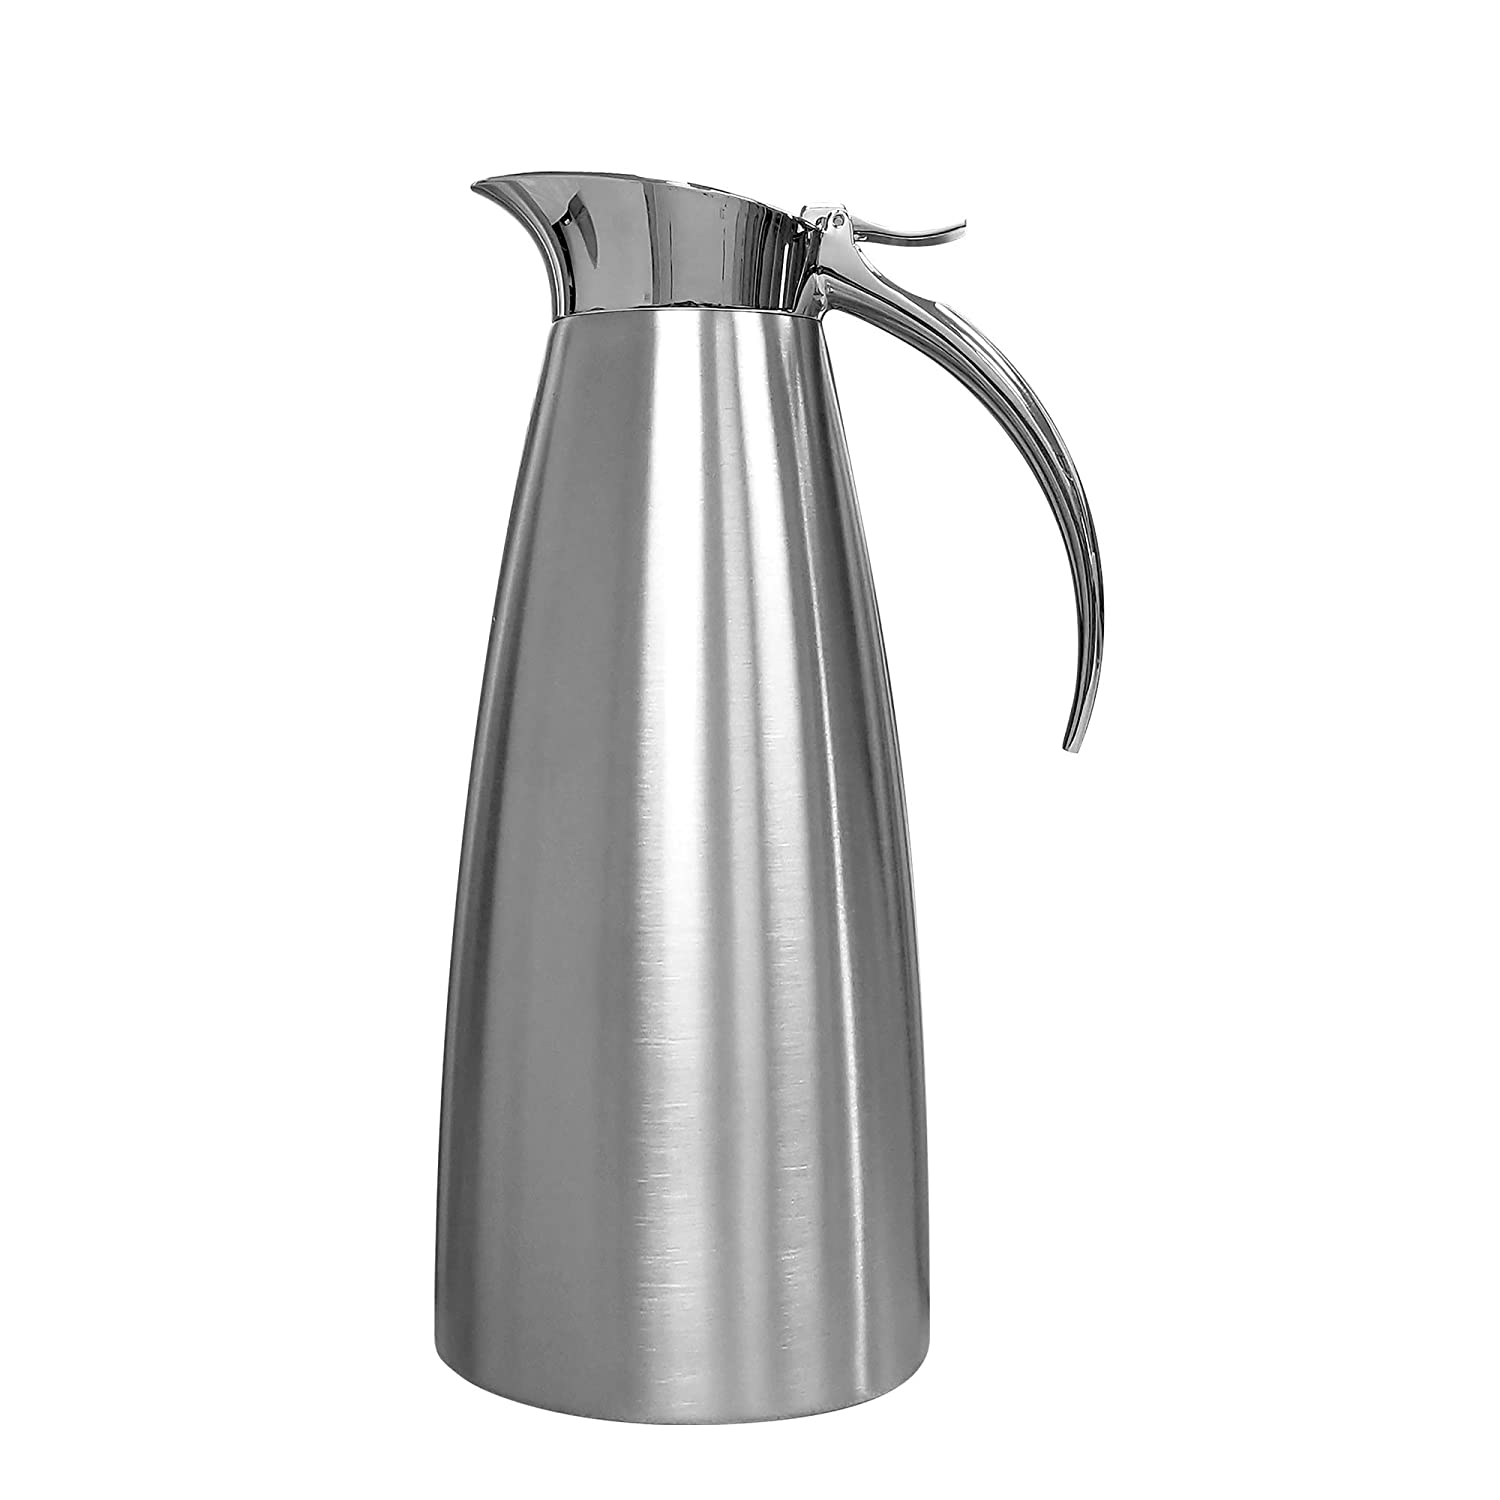 Brushed//Polished BISS Frieling USA Pack of 6 Frieling USA E502489D17-6 Elina Stainless Steel Insulated Server